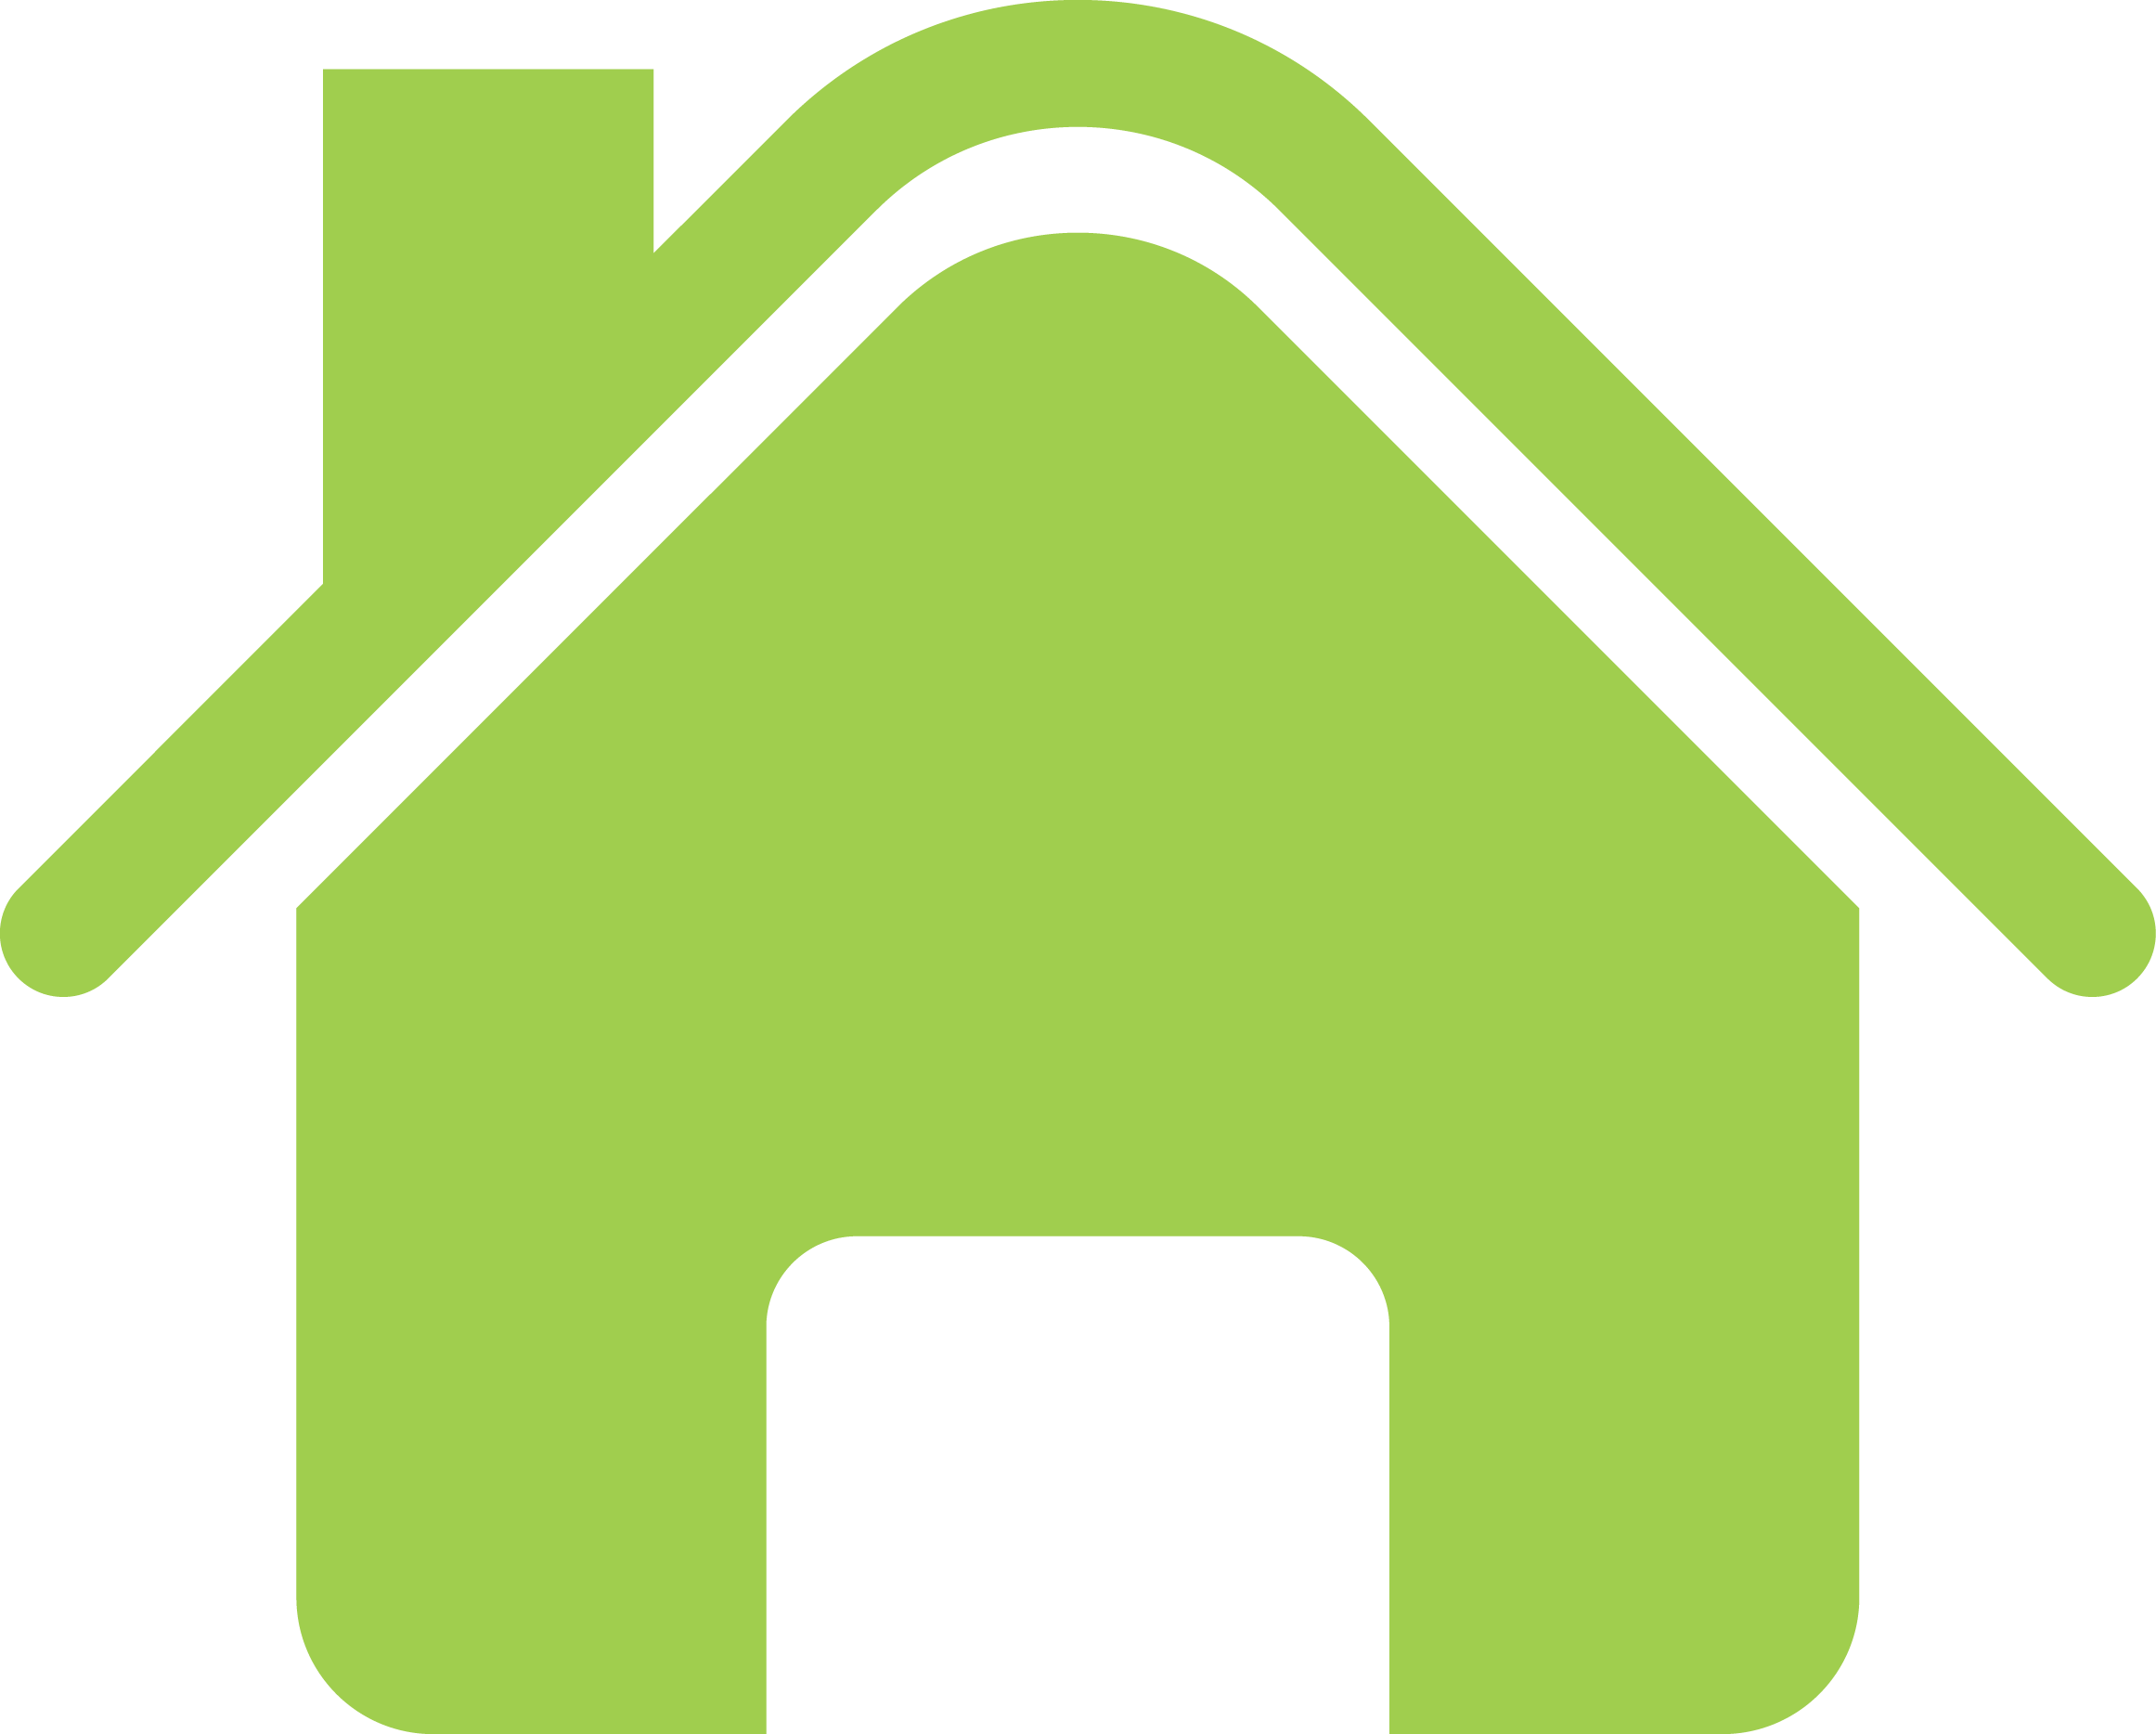 Logo Maison Png 9 » PNG Image #259409 - PNG Images - PNGio